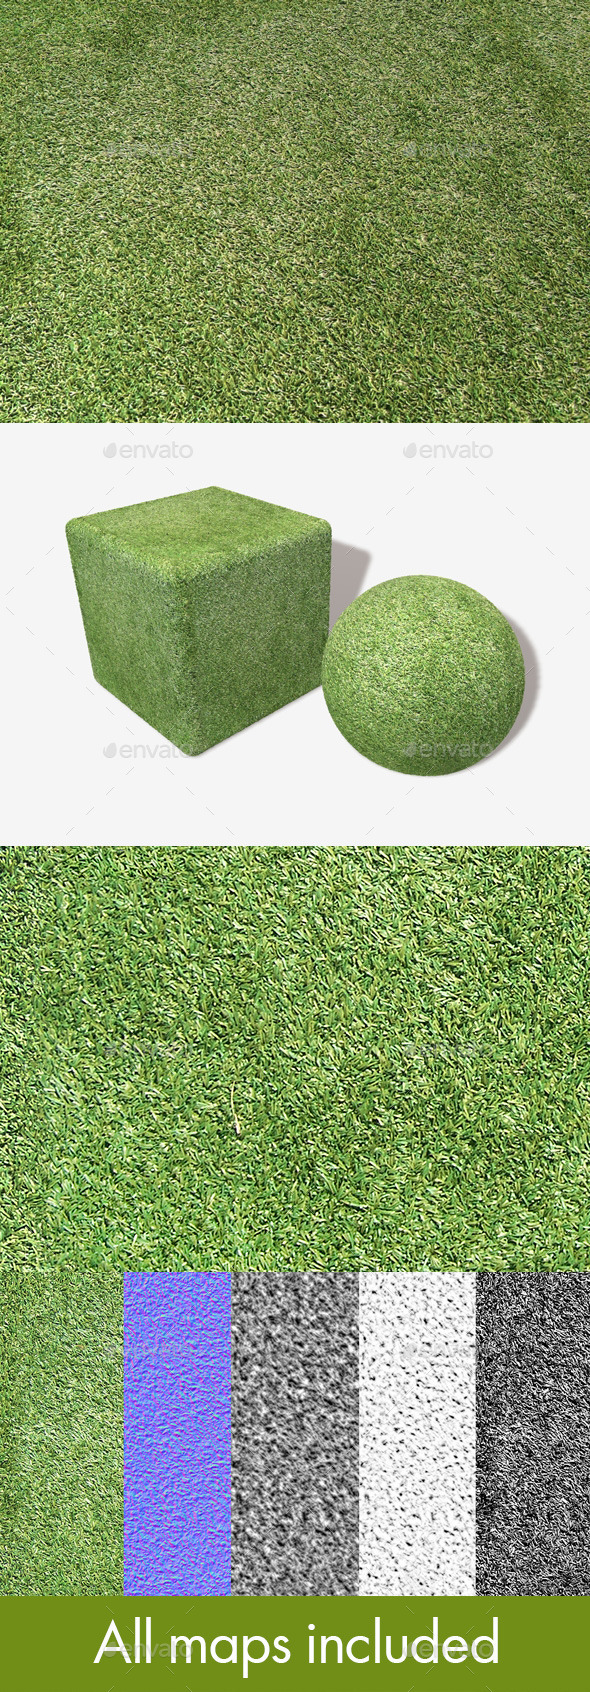 Astroturf Seamless Texture - 3DOcean Item for Sale